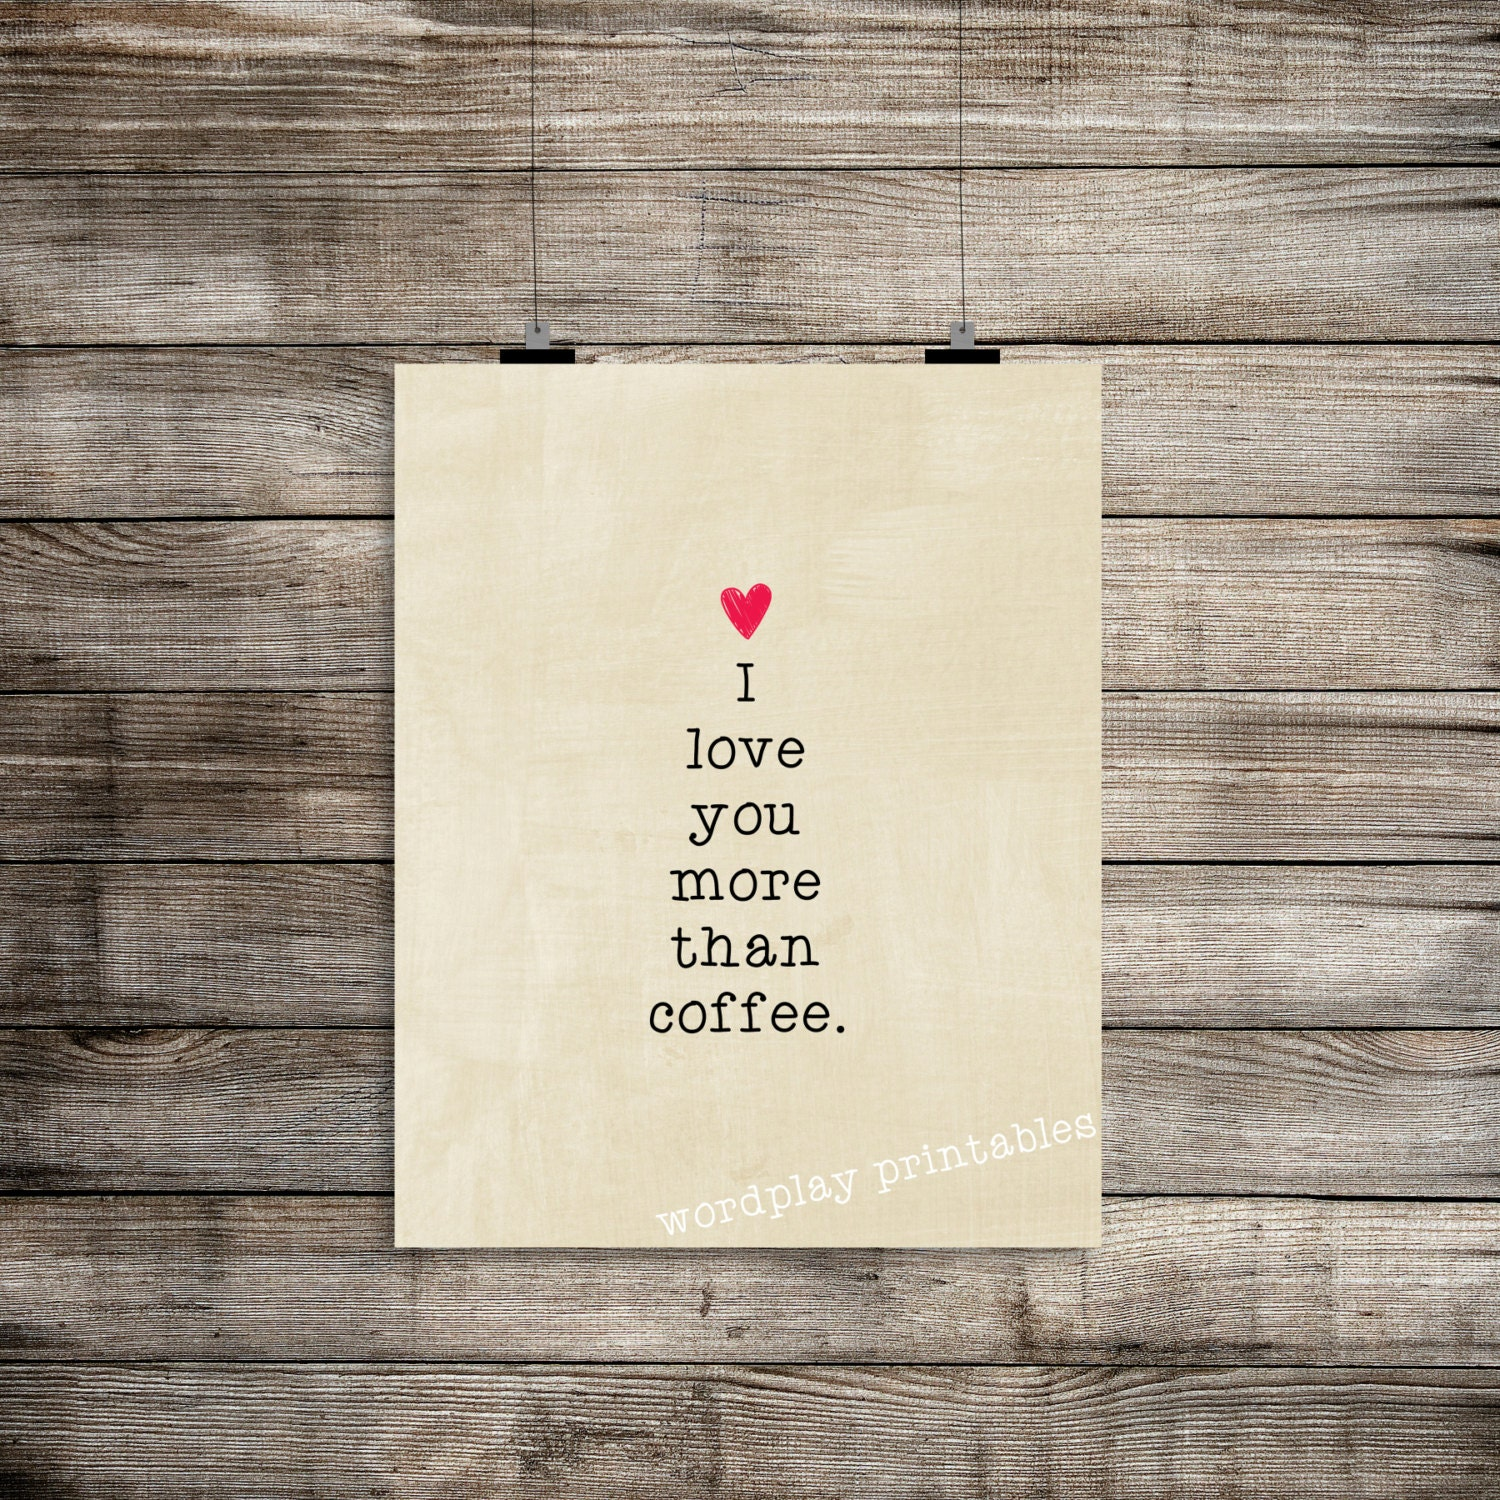 I Love You More Than Coffee: I Love You More Than Coffee 8x10 Digital Printable File Wall